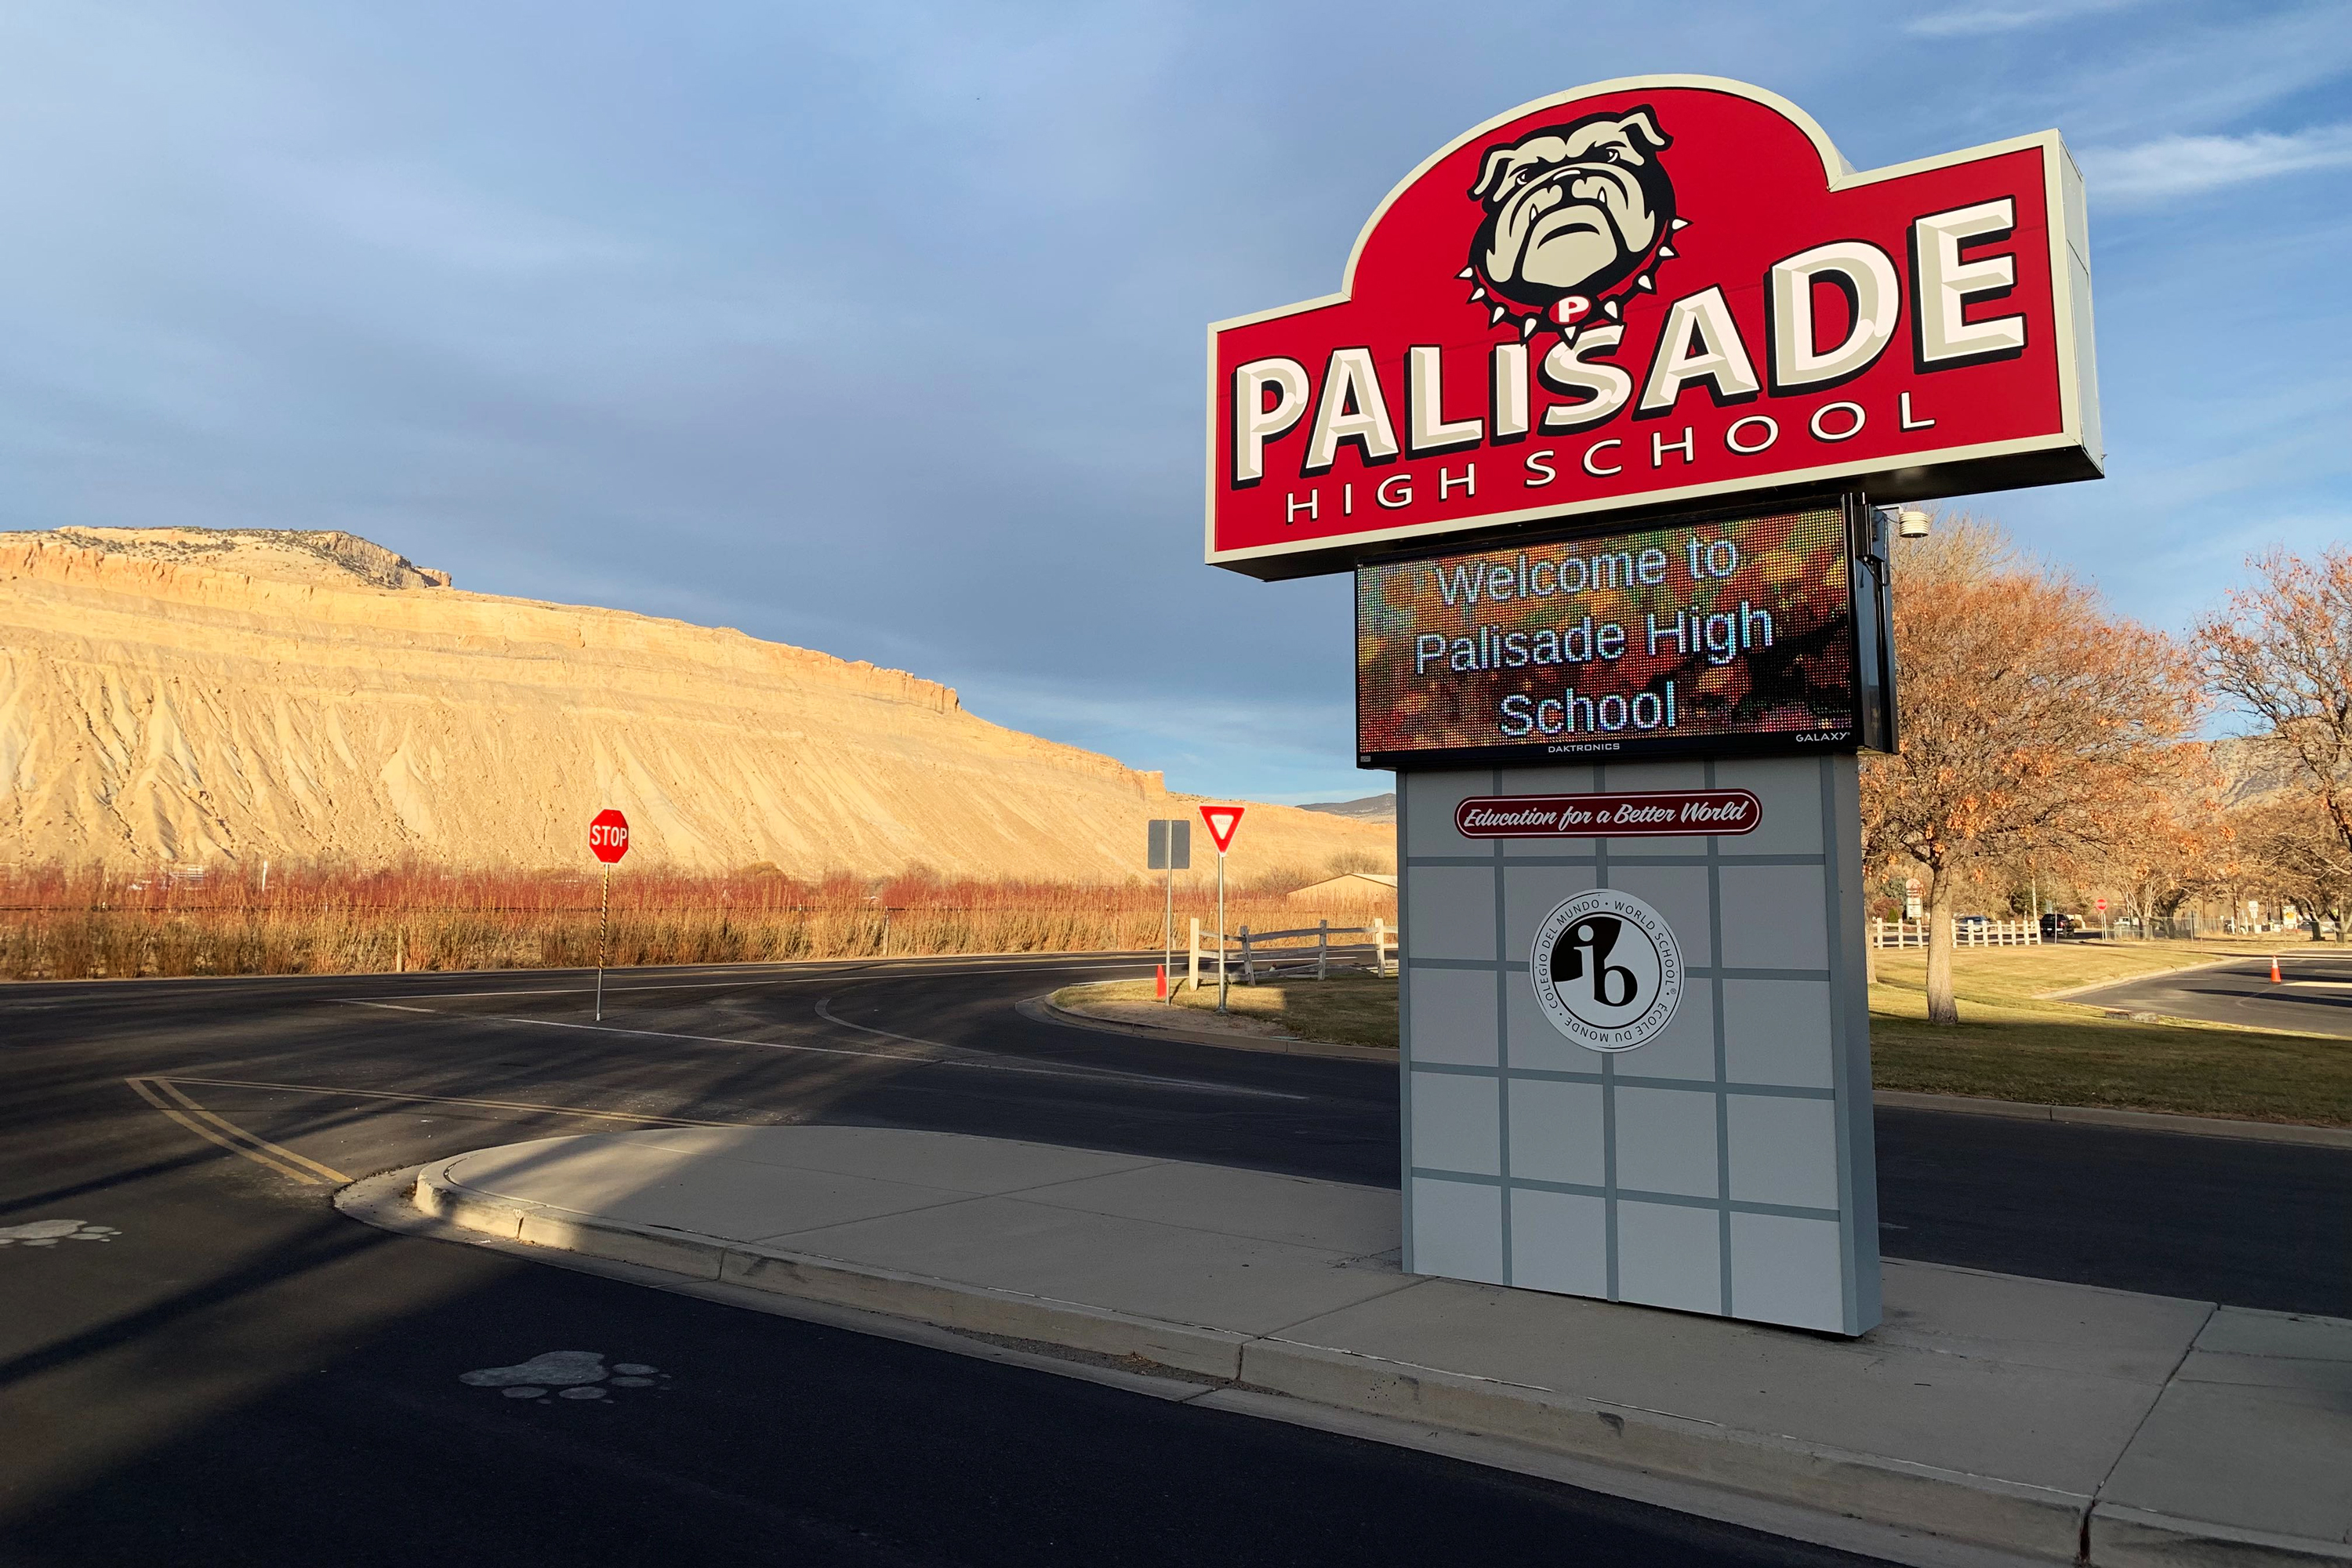 Palisade High School, the first school in Mesa County to close due to the unknown, norovirus-like illness.